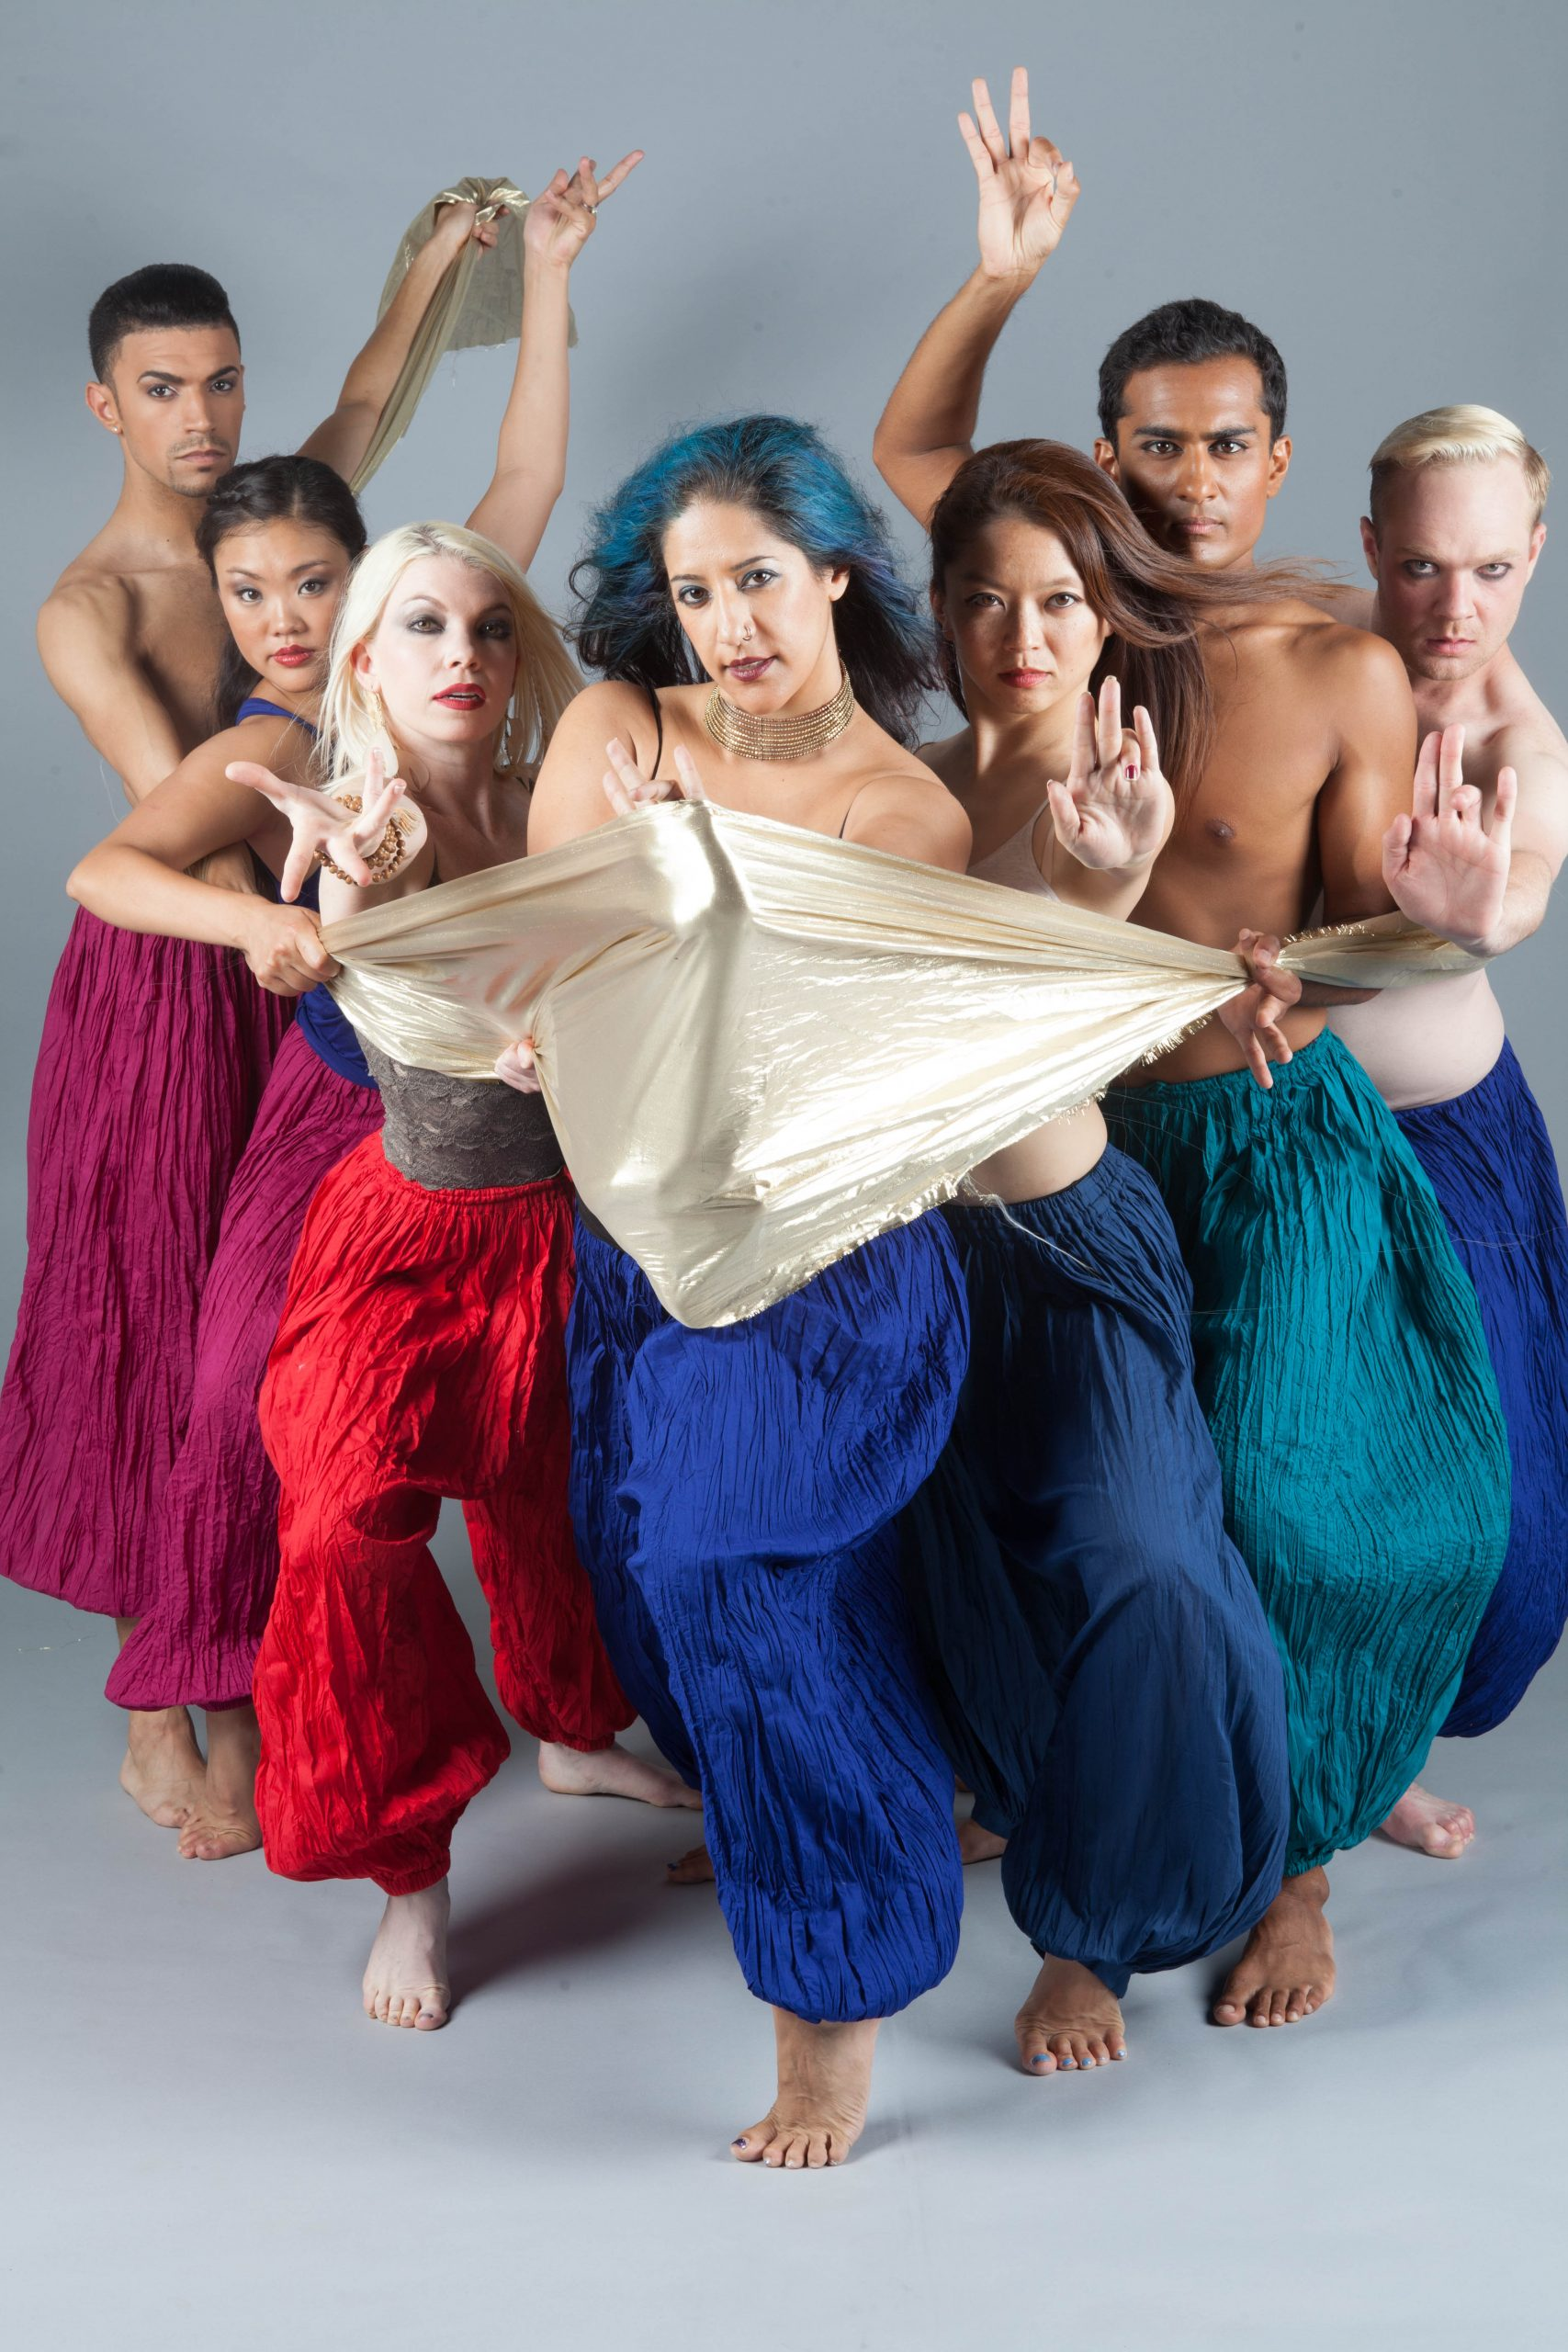 Blue13 Dance Company by Denise Leitner